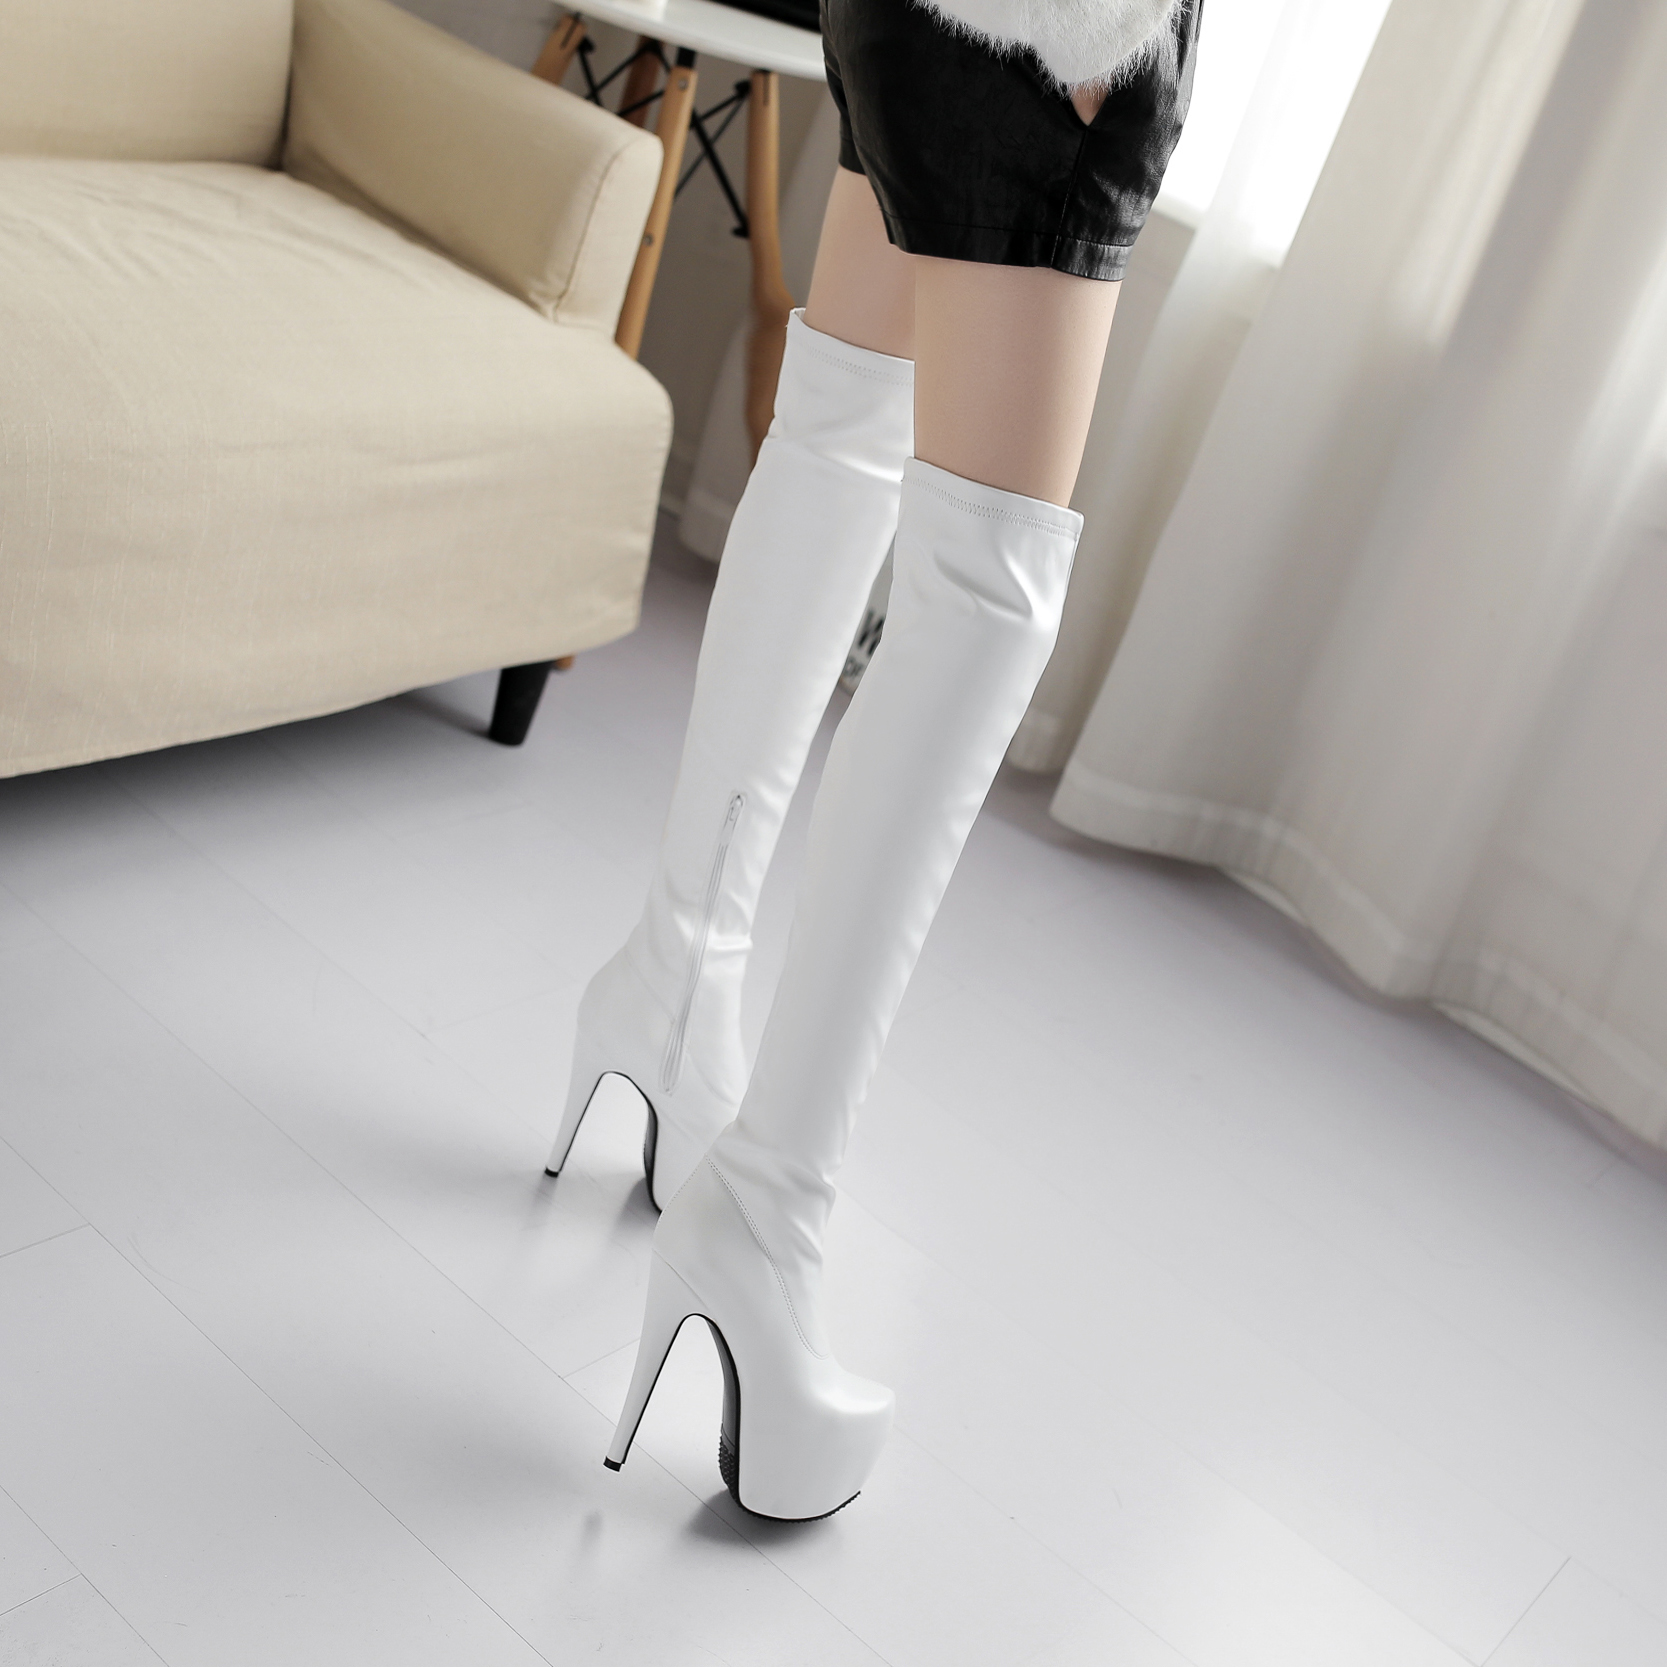 5c9d69358b73 US  99 - 2018 fashion winter high heels 15cm platform sexy winter boots  shoes for woman over the knee thigh high long boots short plush white Stretch  boots ...